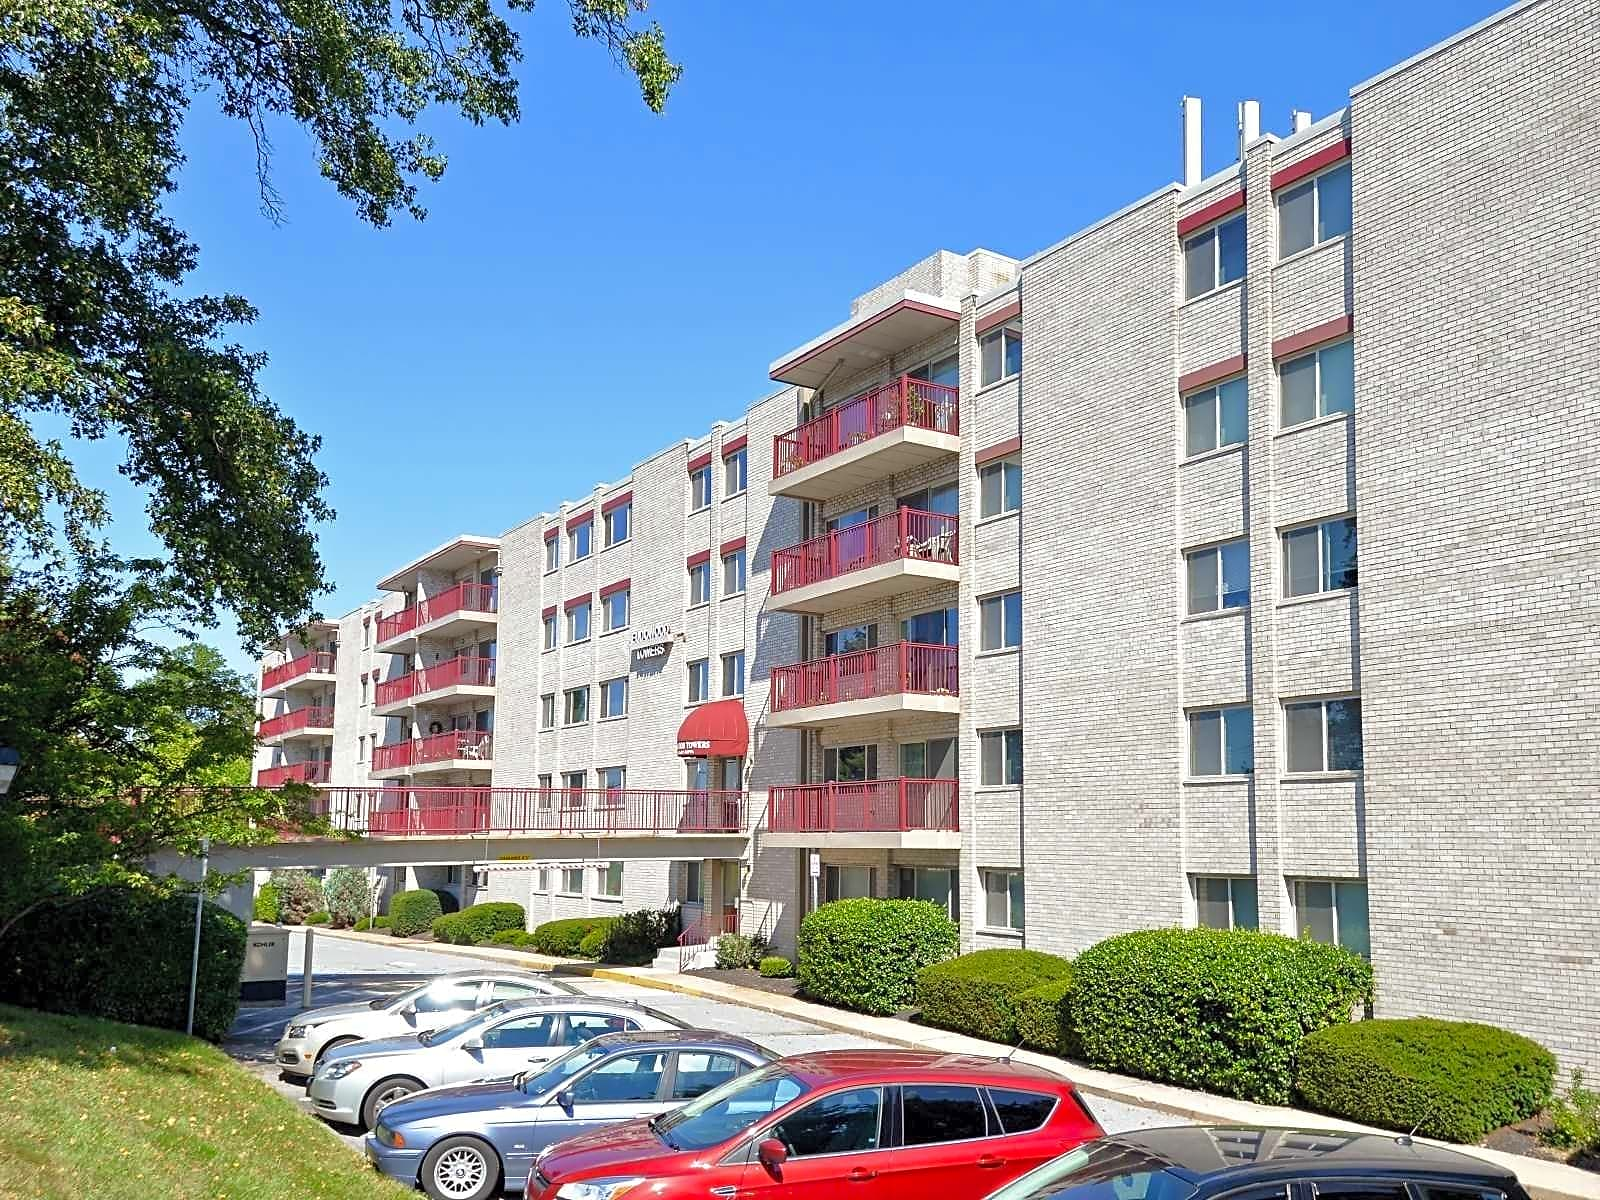 Apartments for Rent in Towson MD | Apartments.com